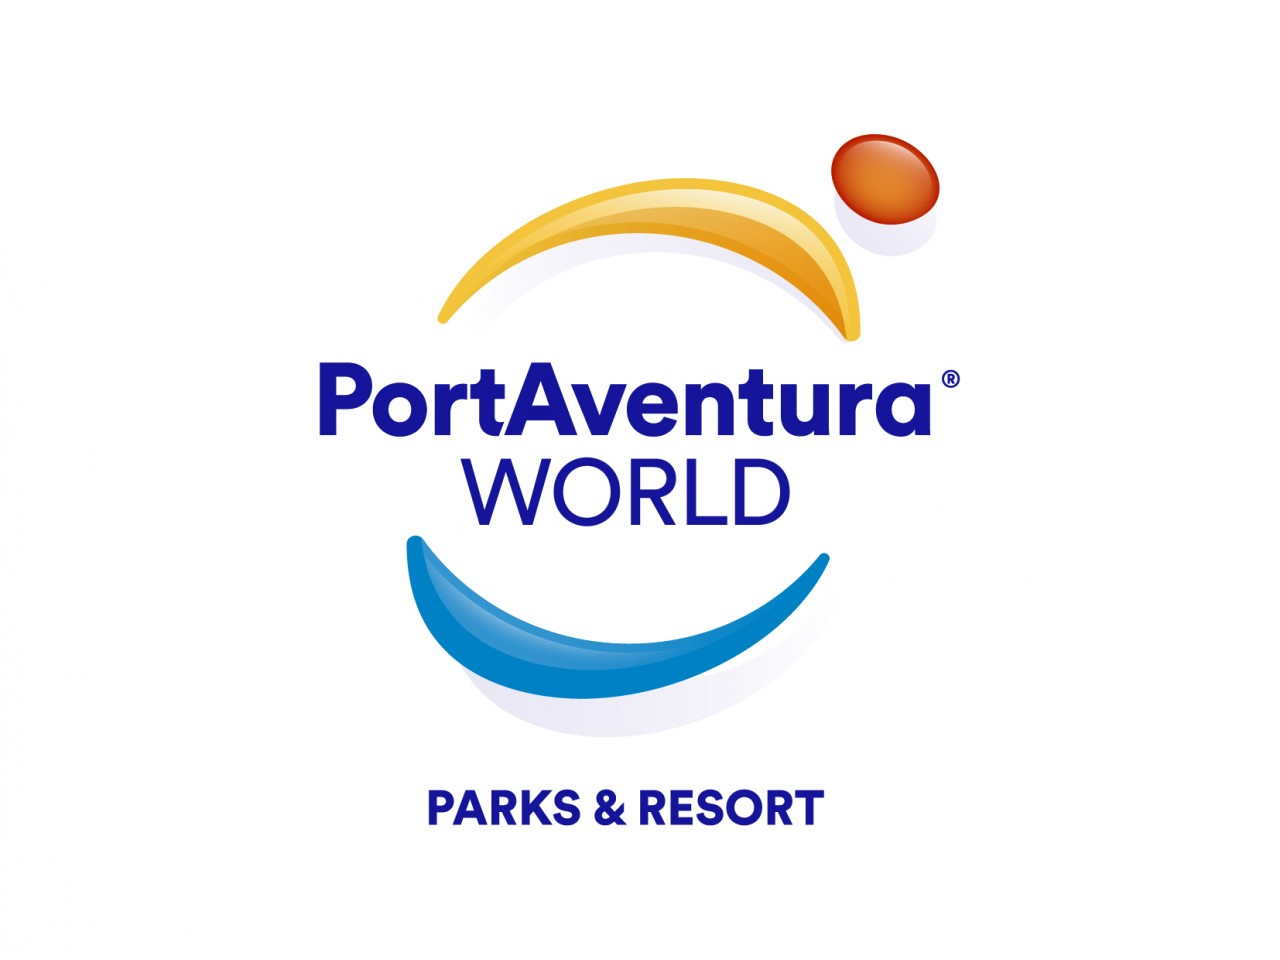 PORTAVENTURA WORLD TICKET PRICES